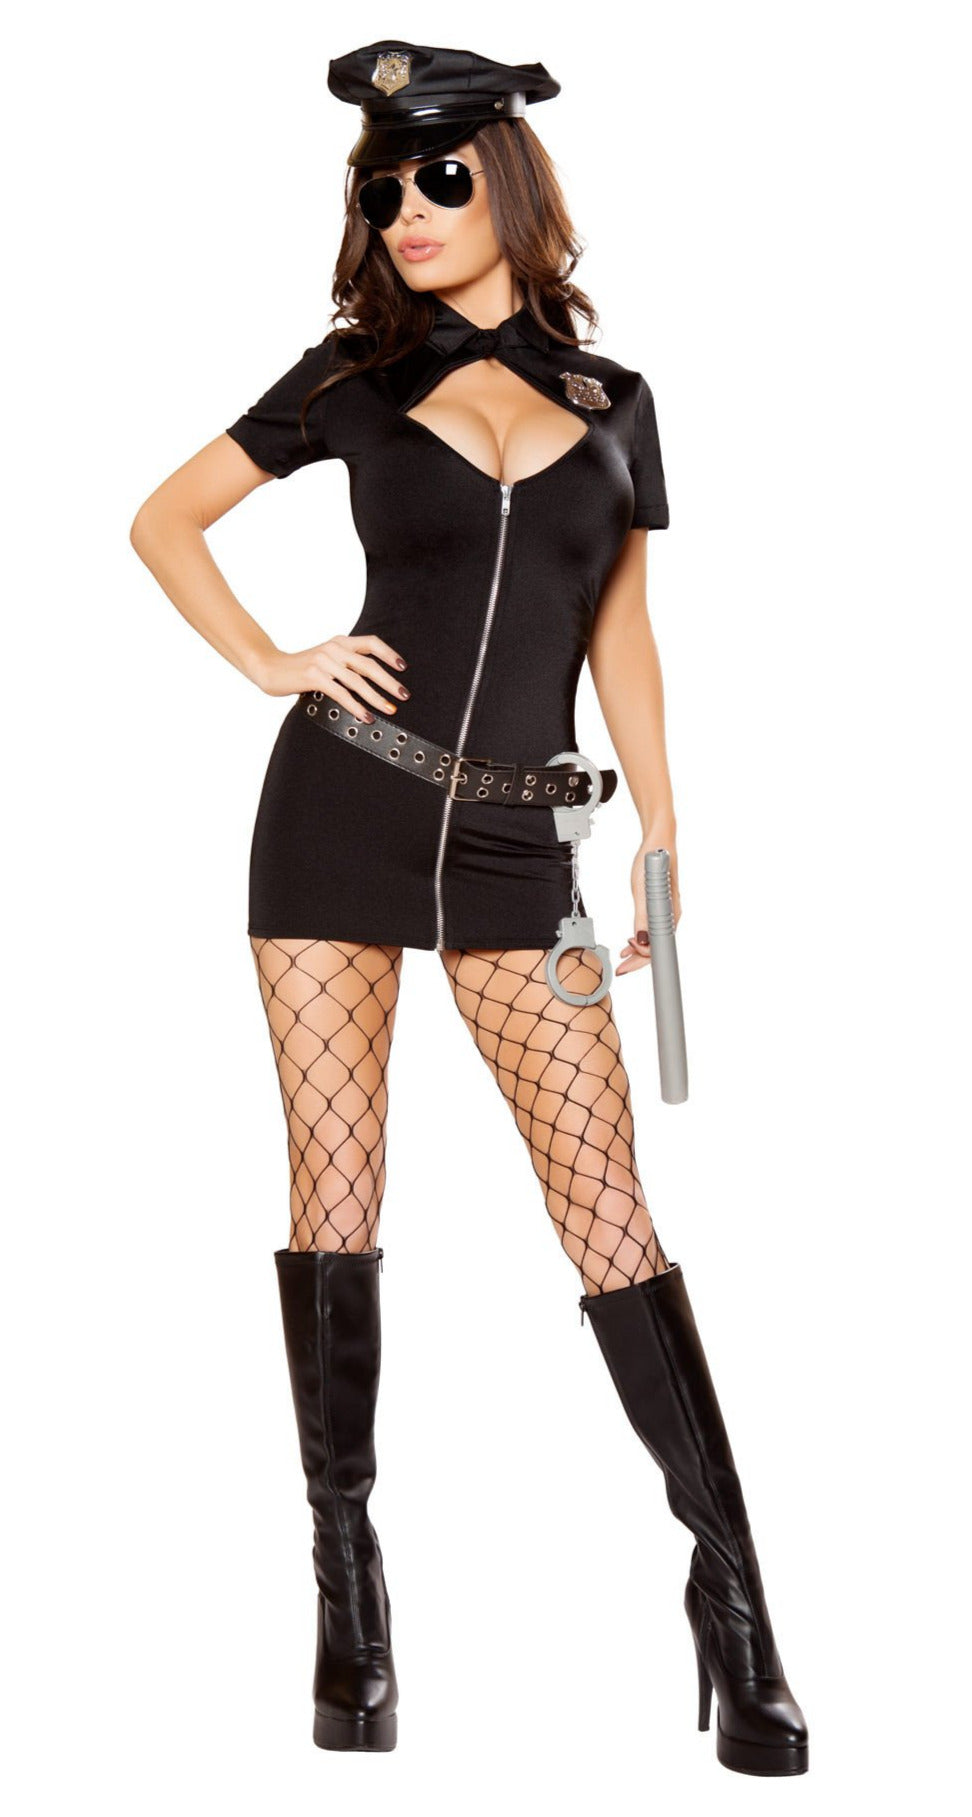 Police Hottie Costume